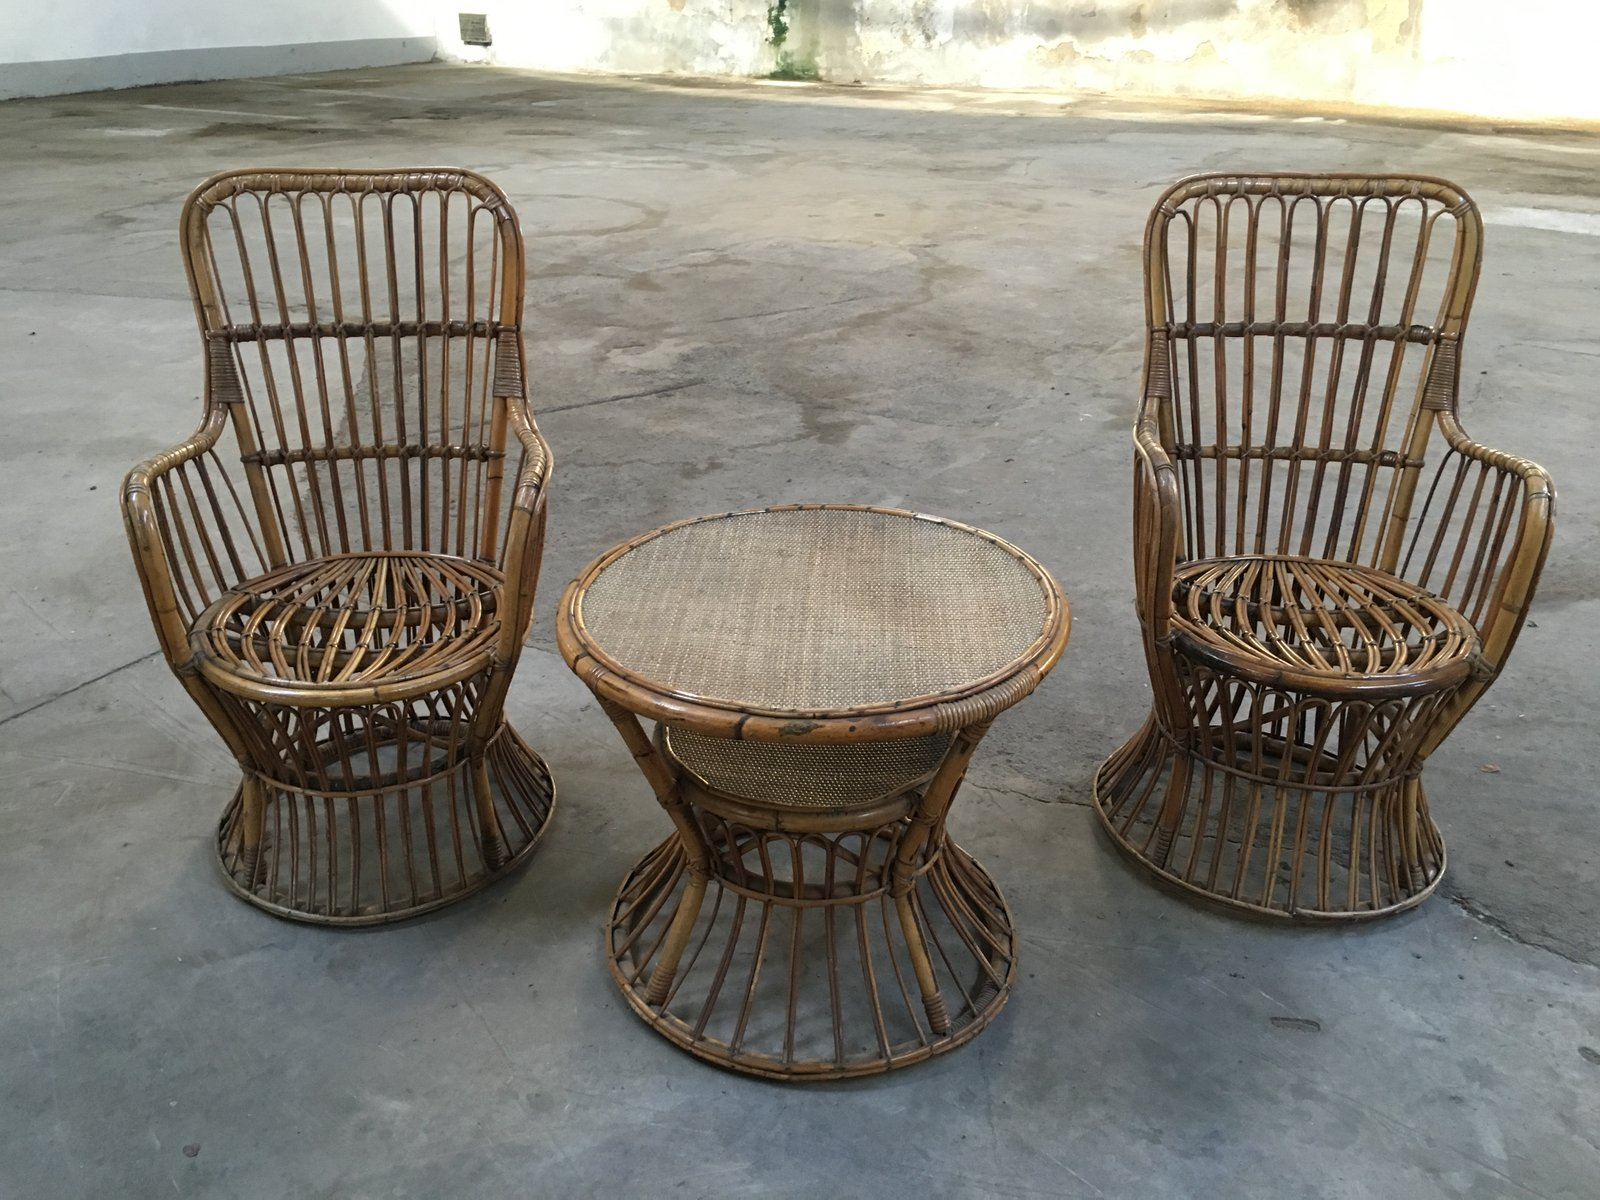 bamboo rattan chairs. Italian Bamboo \u0026 Rattan Set Of Two Armchairs Side Table, 1950s Chairs H